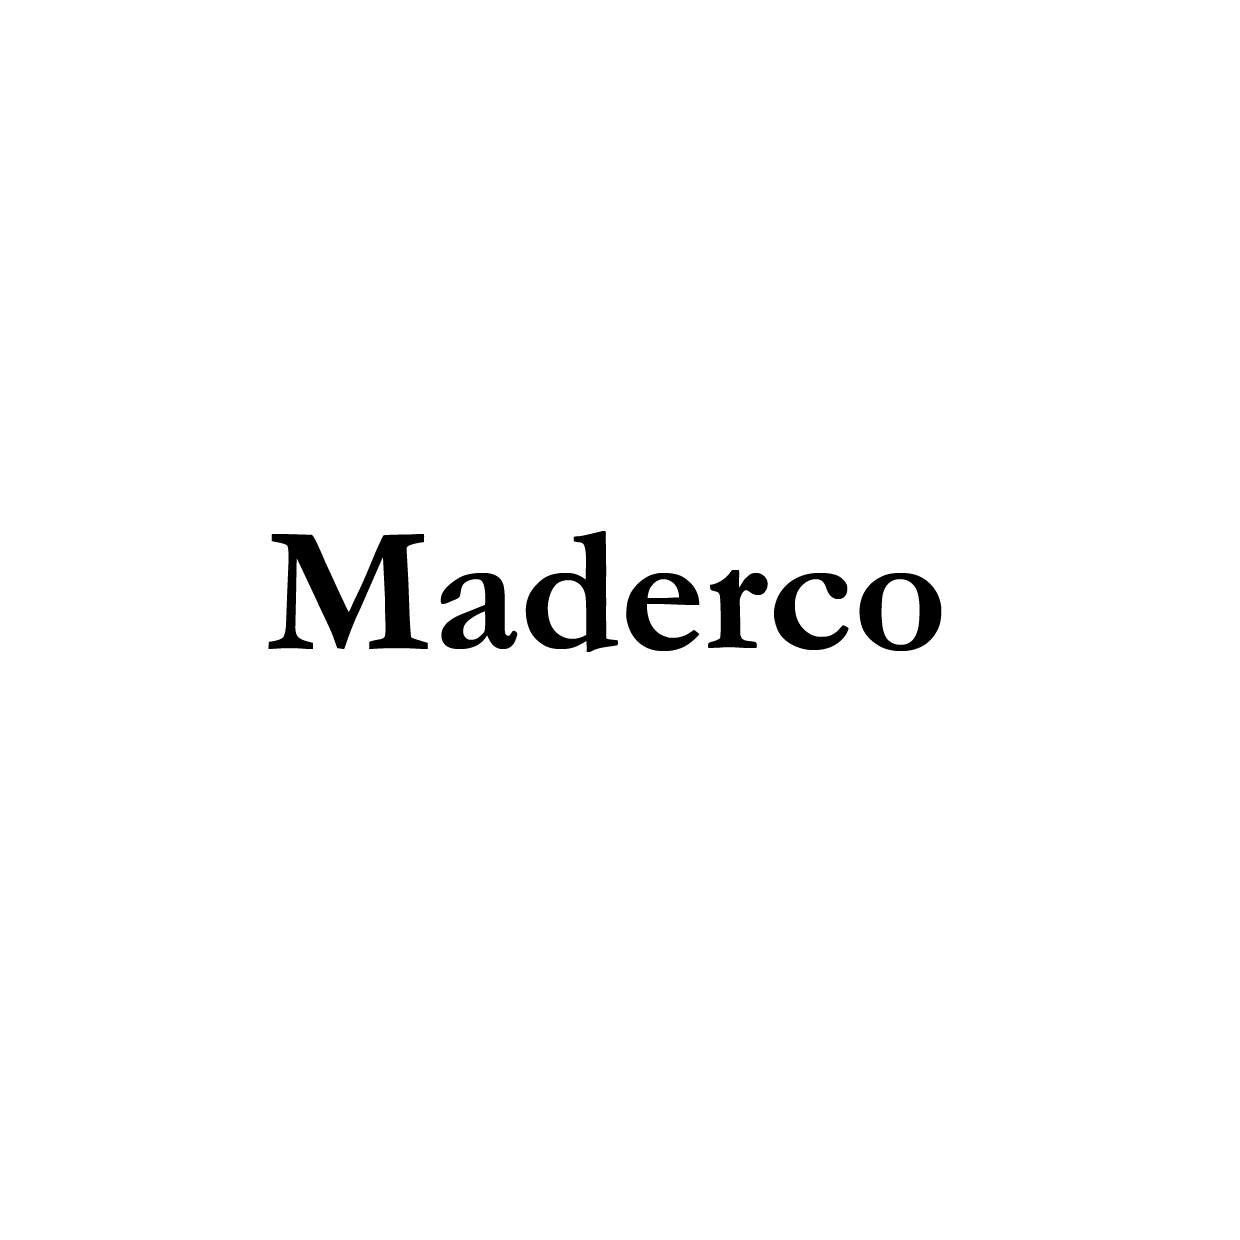 Maderco